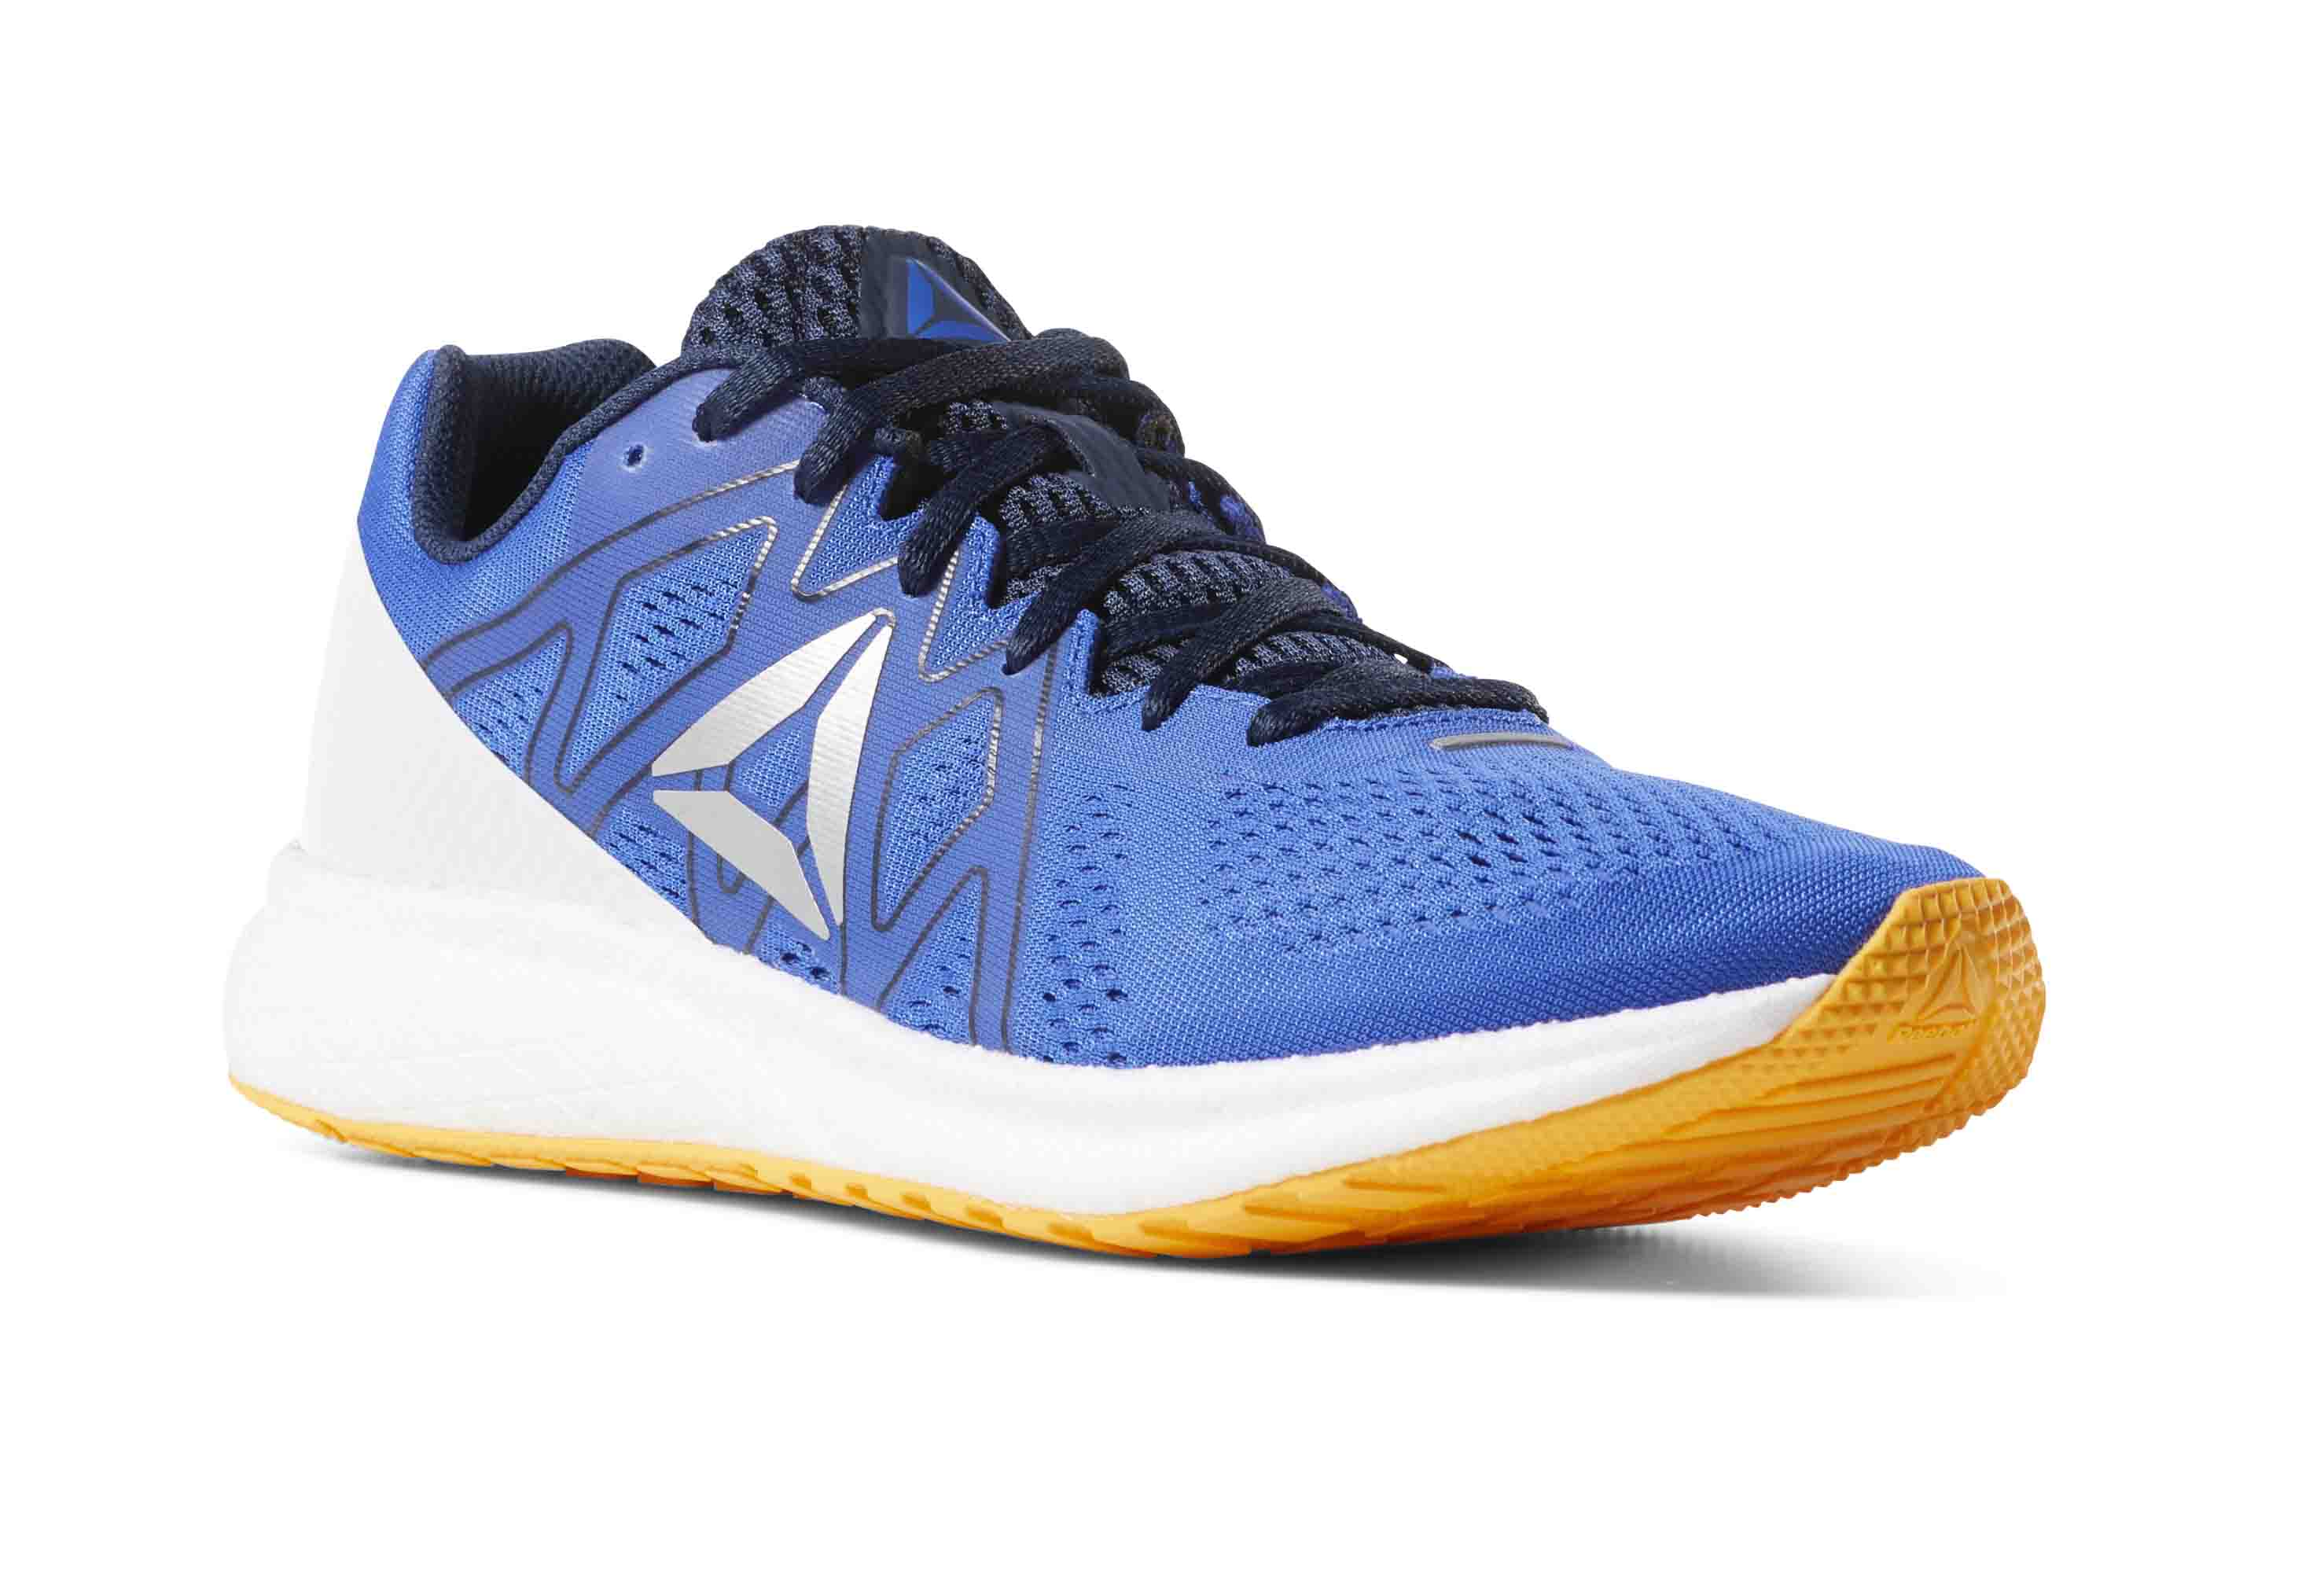 The Best Running Shoes for Men  Which Pair Is Right For You  7b0c8451a0